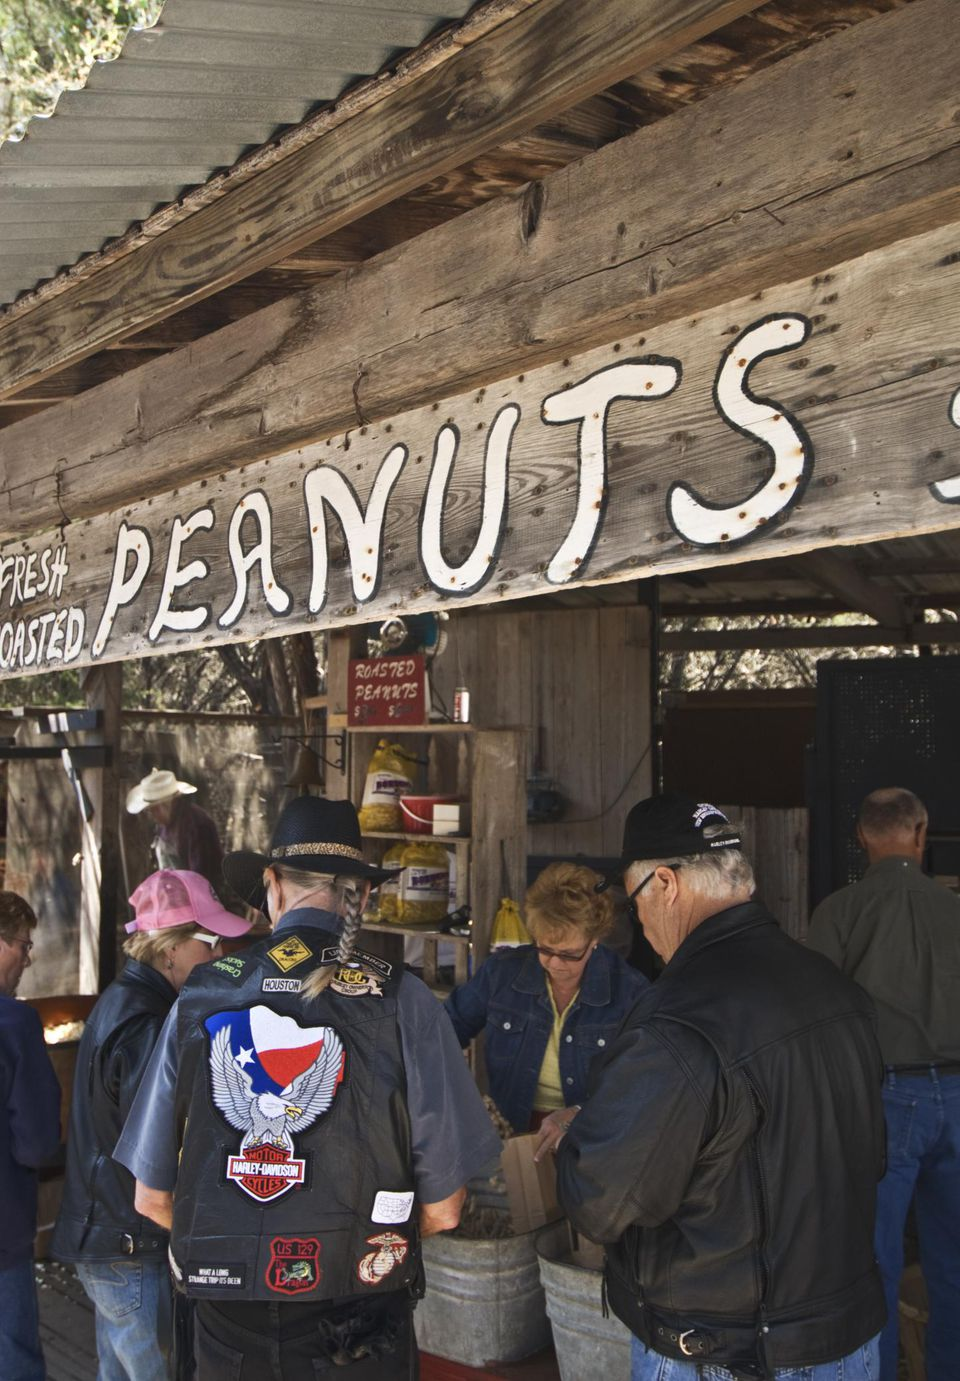 Roasted peanut vendor and customers at Wimberley Market